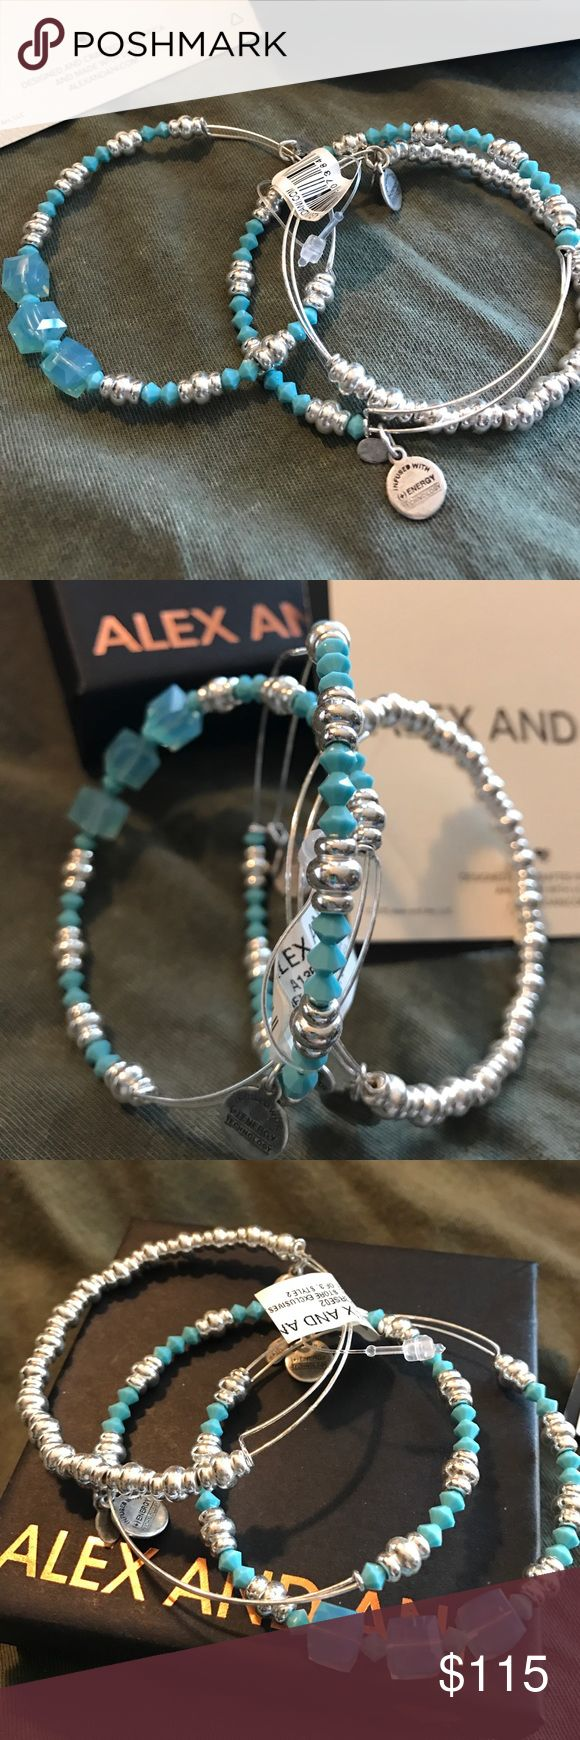 Alex and ANI Retail Store Exclusive Set of 3 Gorgeous Set of 3 Turquoise And Silver Beaded Bangles, an Alex and ANI Retail Store Exclusive.  NWT!  Will come with A&A box and cards. Alex & Ani Jewelry Bracelets